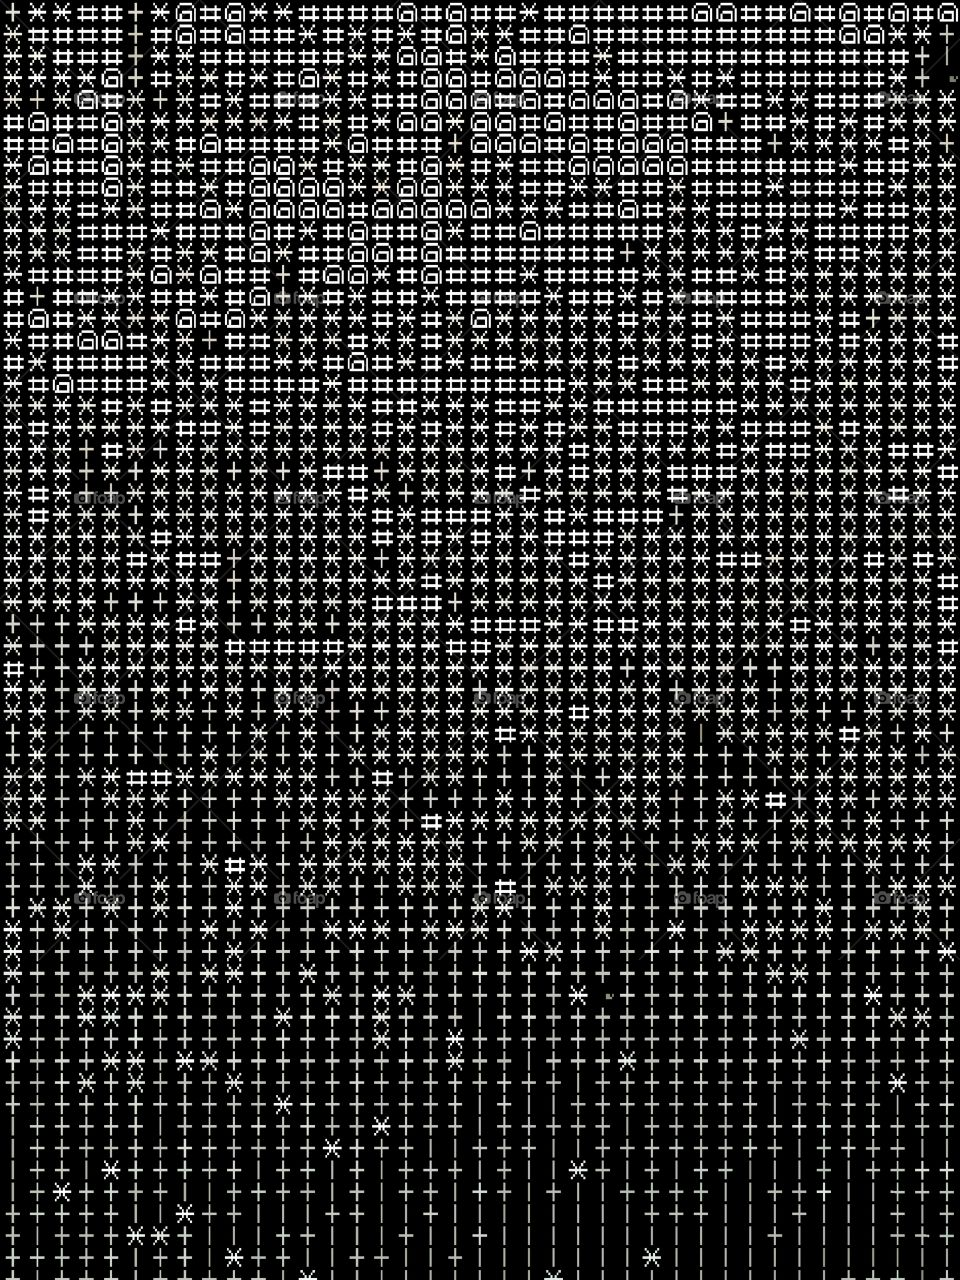 8bit text abstraction